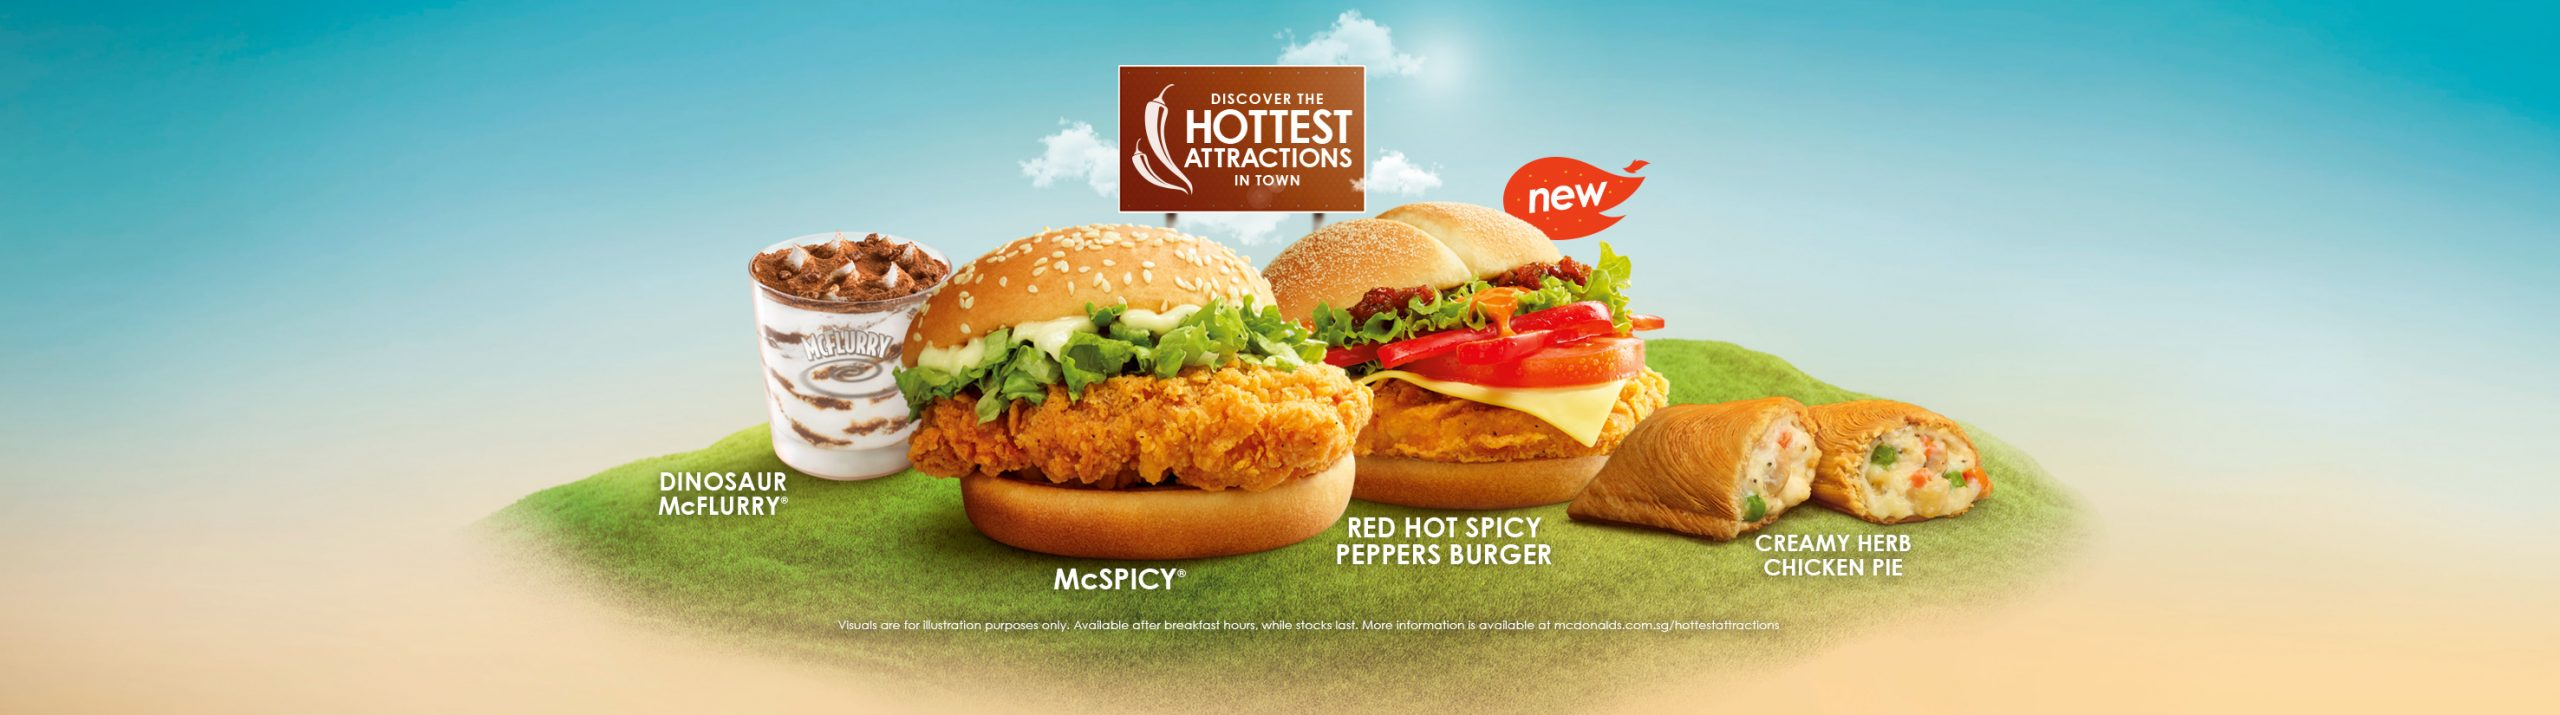 McDonald's Red Hot Spicy Peppers Burger